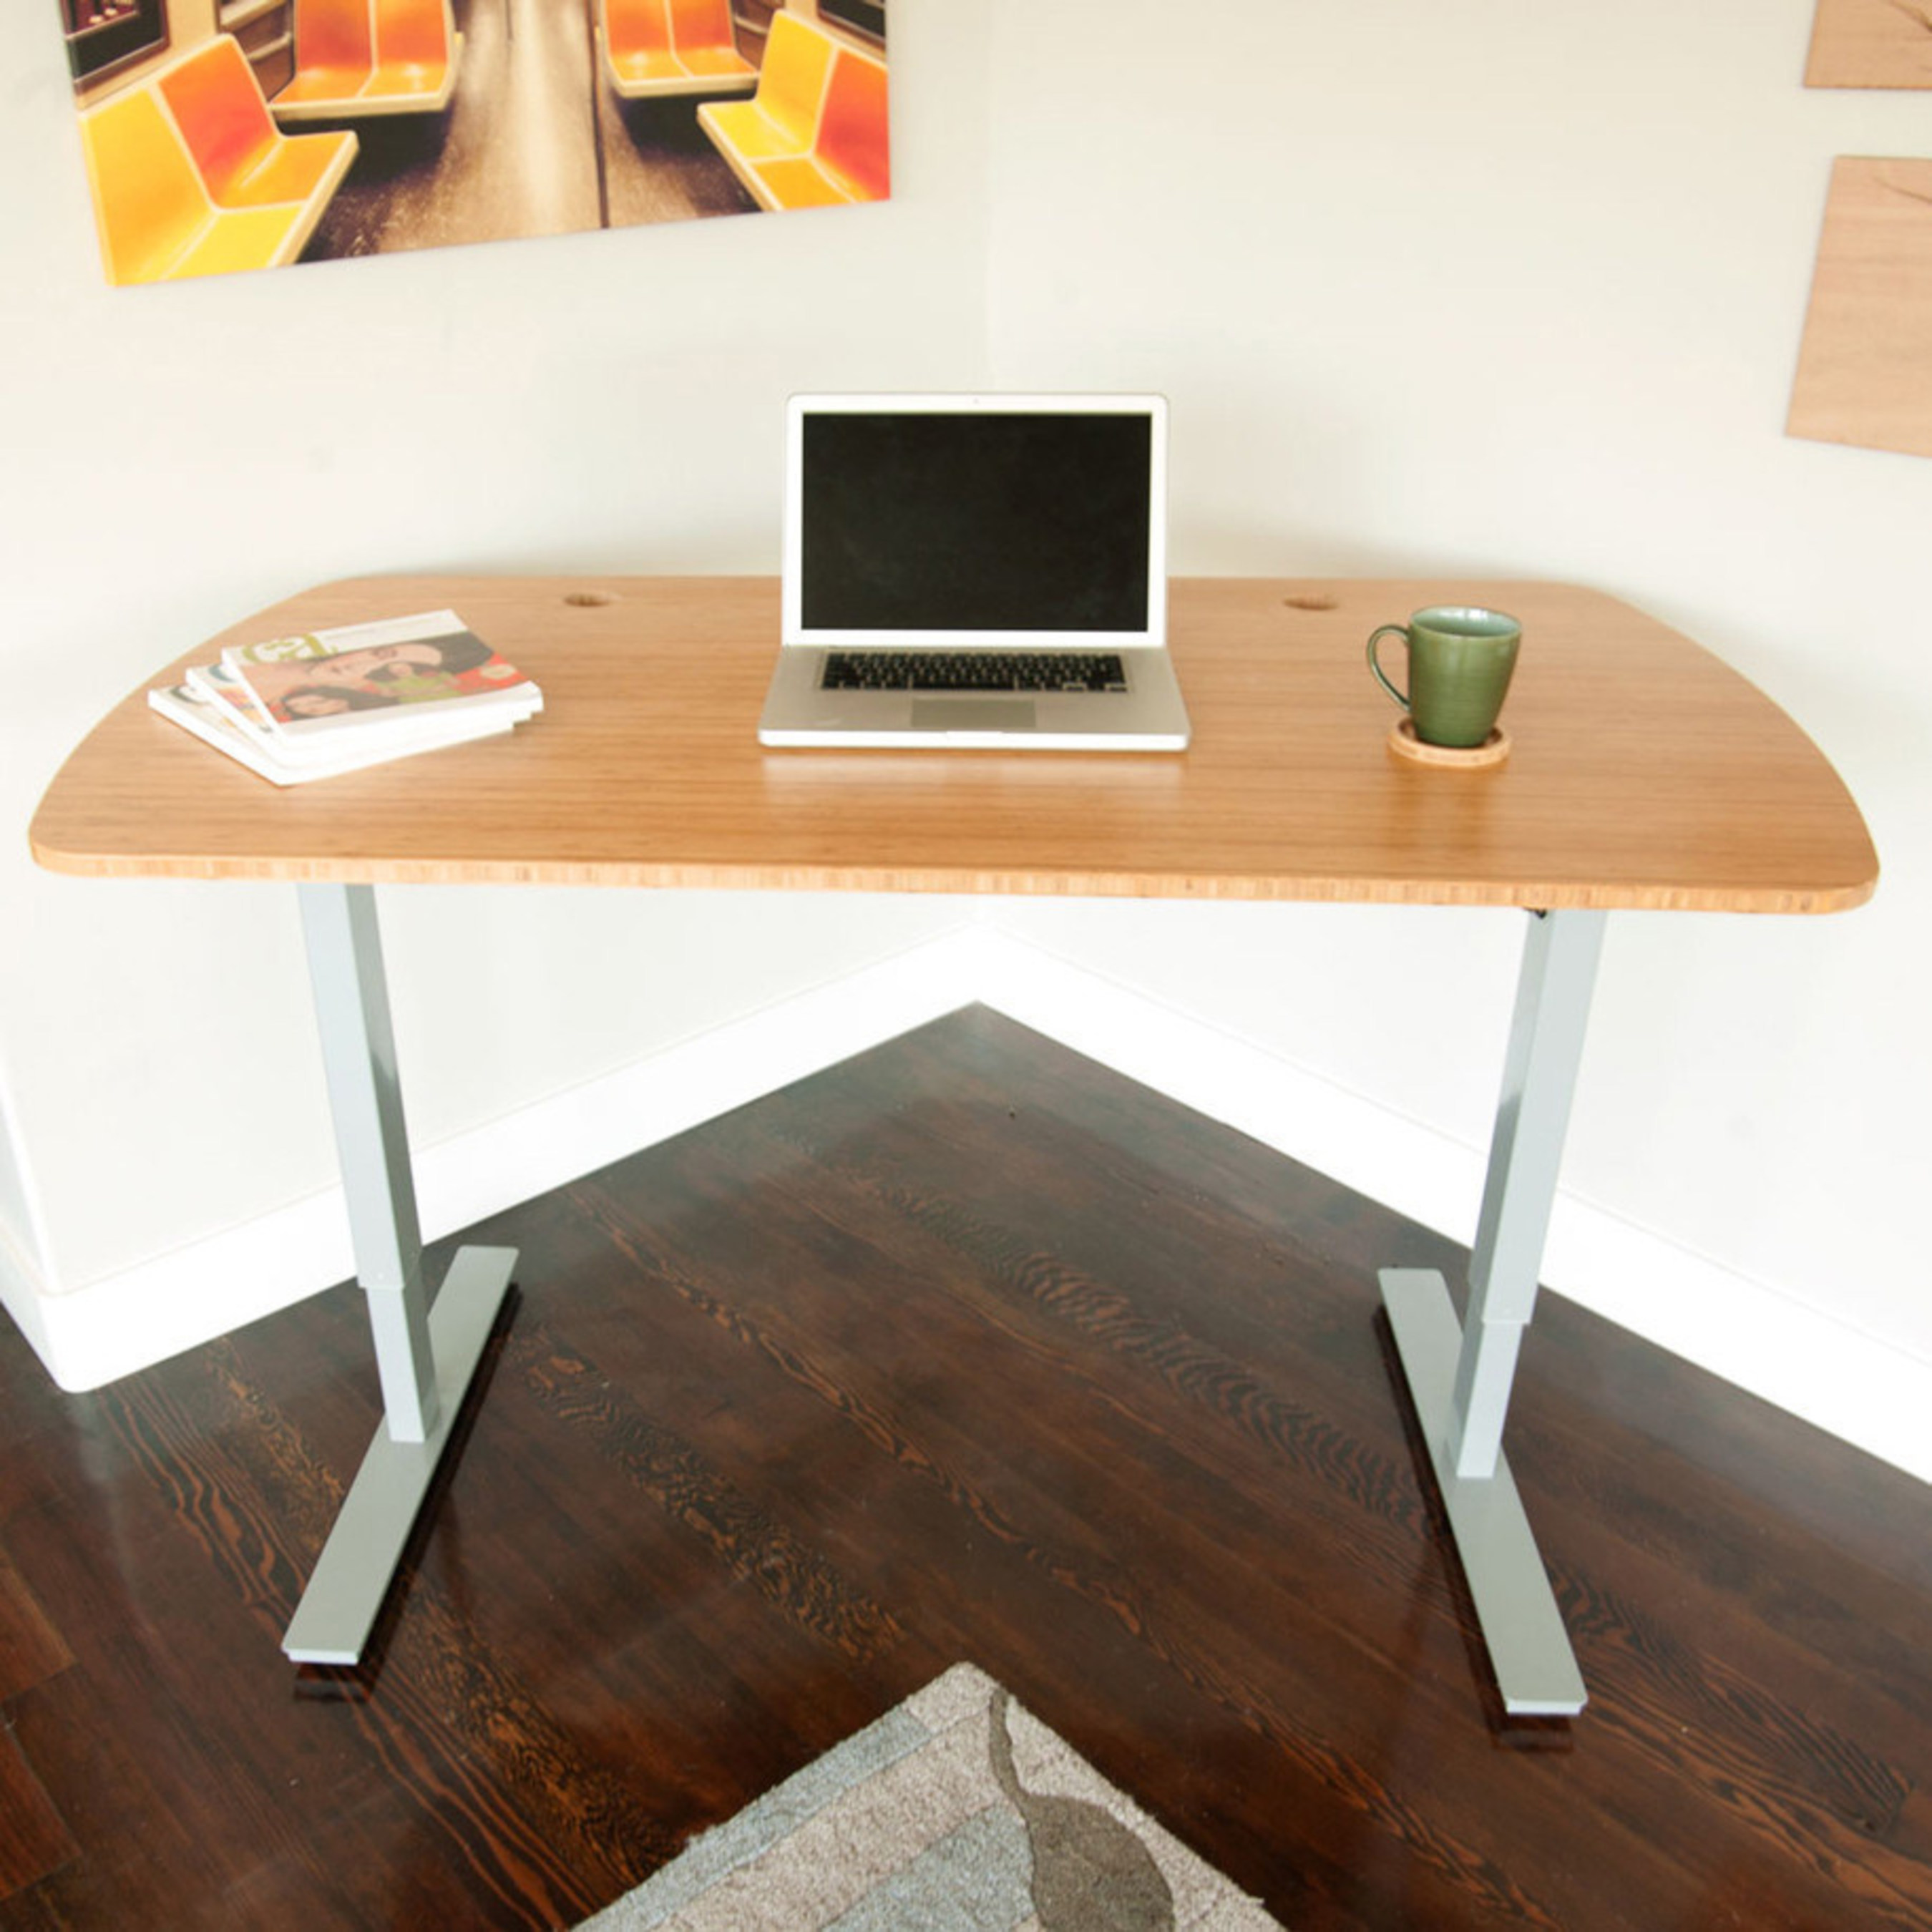 Standee Co. Launches Electric Height-Adjustable Standing Desk Starting at under $400